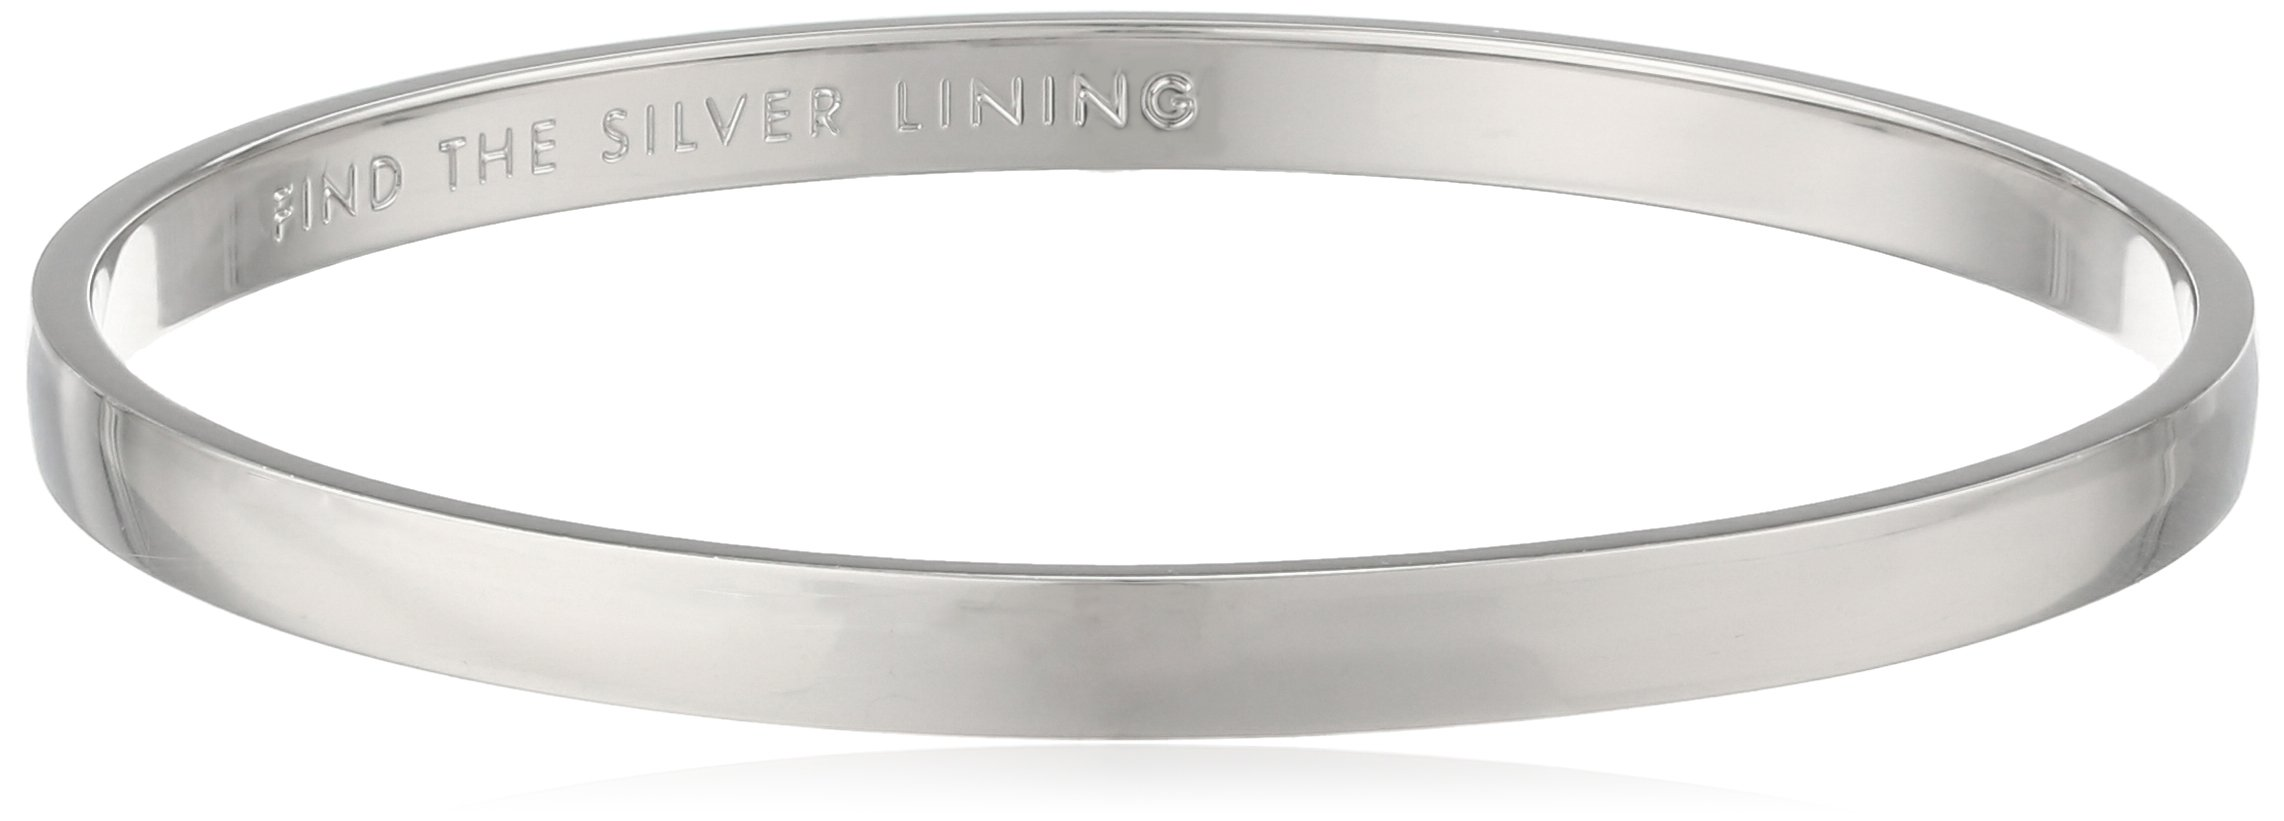 Kate Spade New York ''Idiom Bangles Find The Silver Lining Solid Bangle Bracelet